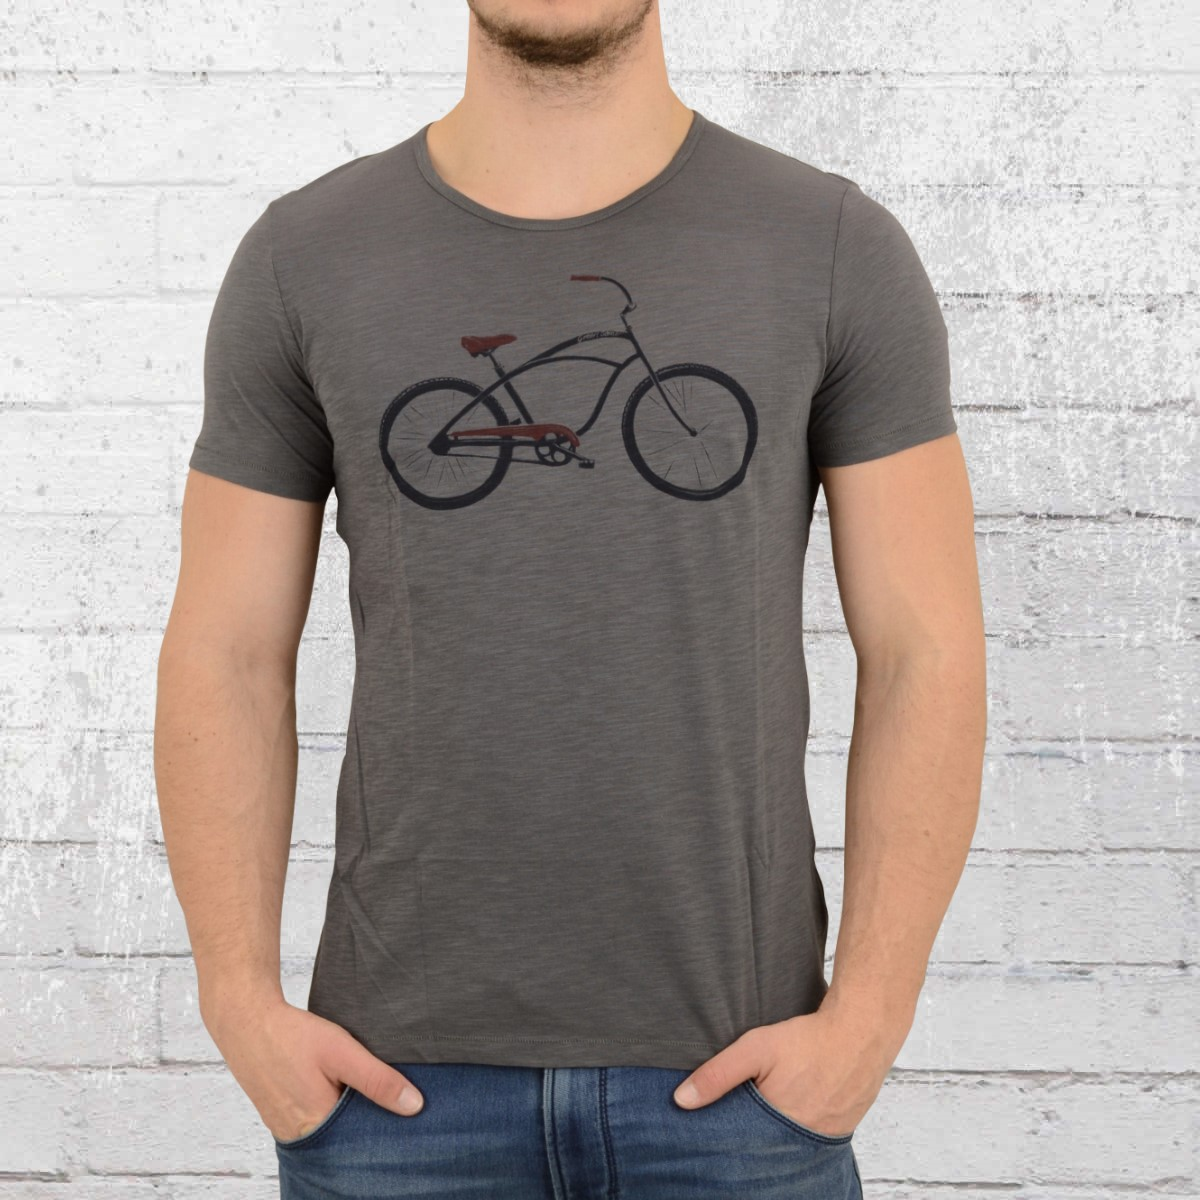 Greenbomb Bycycle Male T-Shirt Beach Cruiser anthracite. ›‹ «